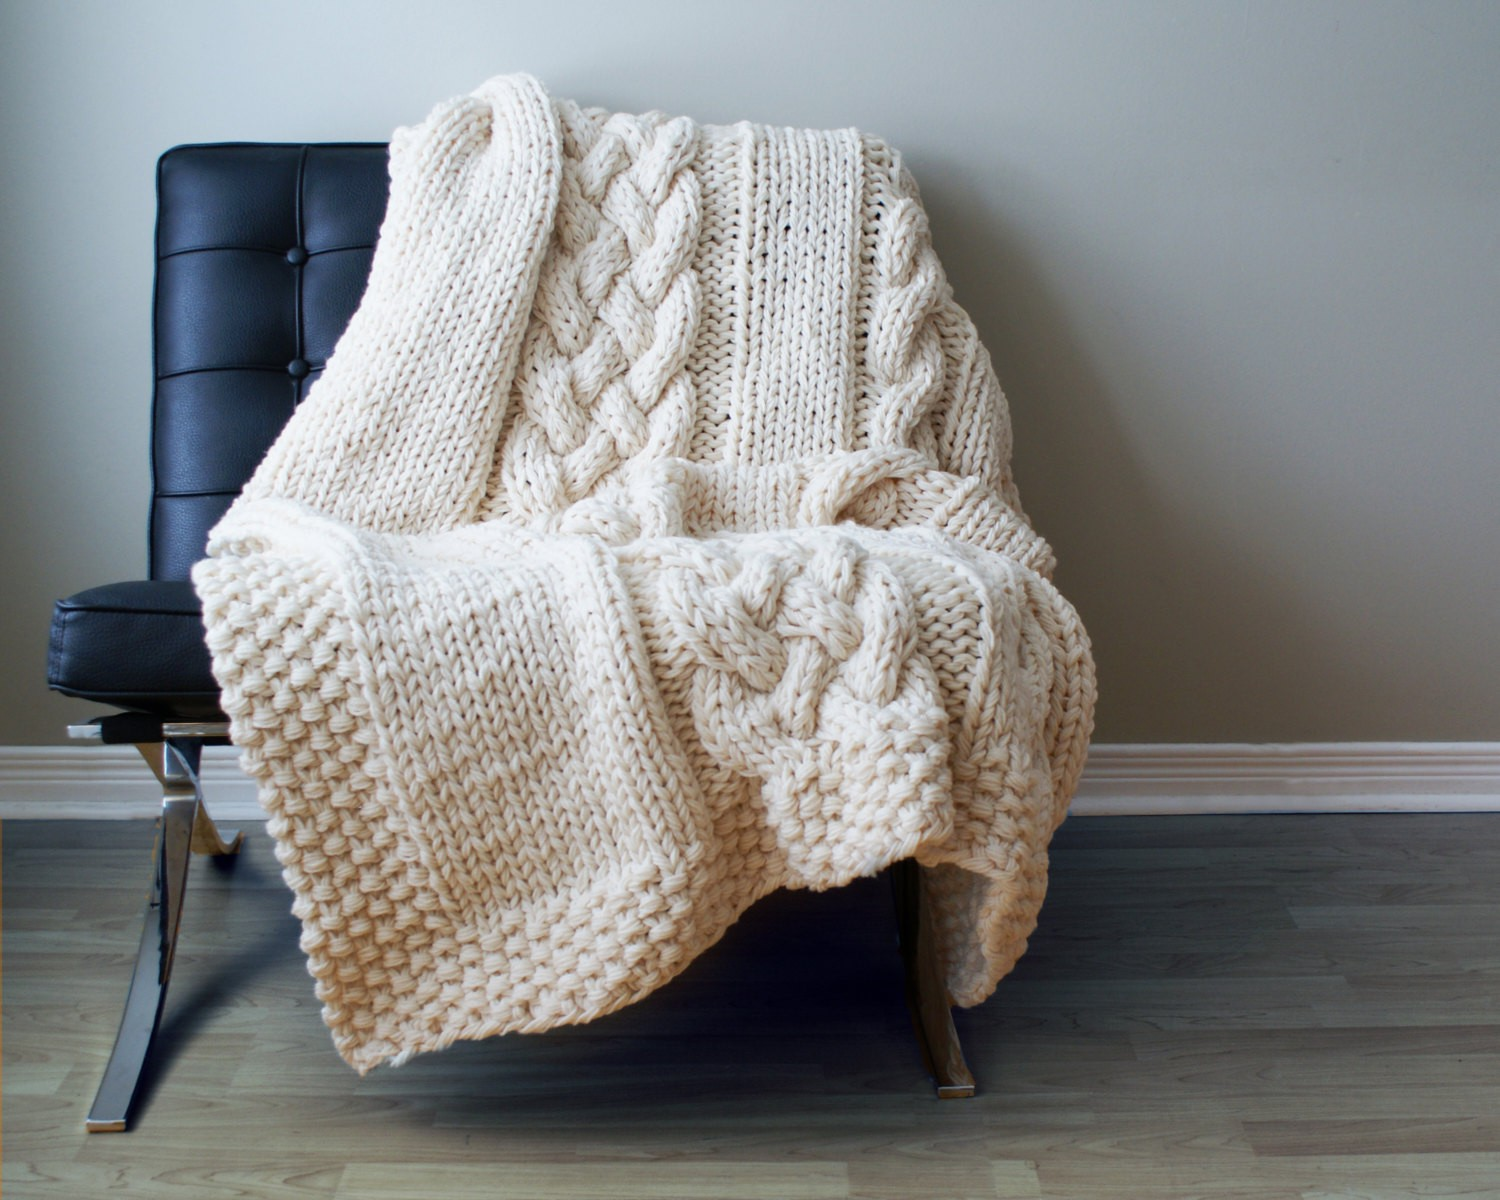 Knitting A Chunky Blanket : Chunky knit blanket pattern a knitting